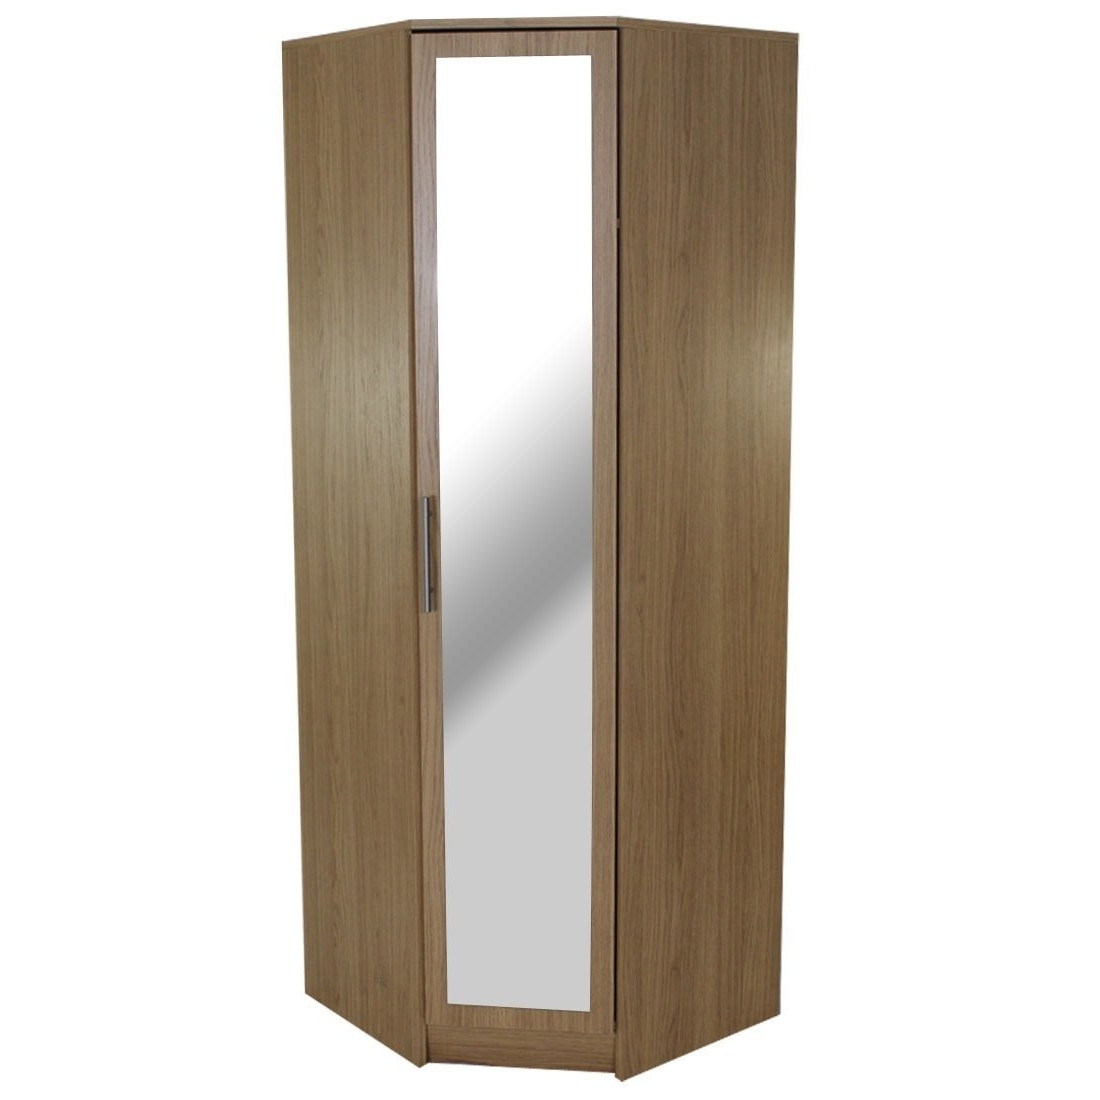 1 Door Mirrored Wardrobes For Well Known Devoted2Home Humber Bedroom Furniture With 1 Door Mirrored Corner (Gallery 7 of 15)